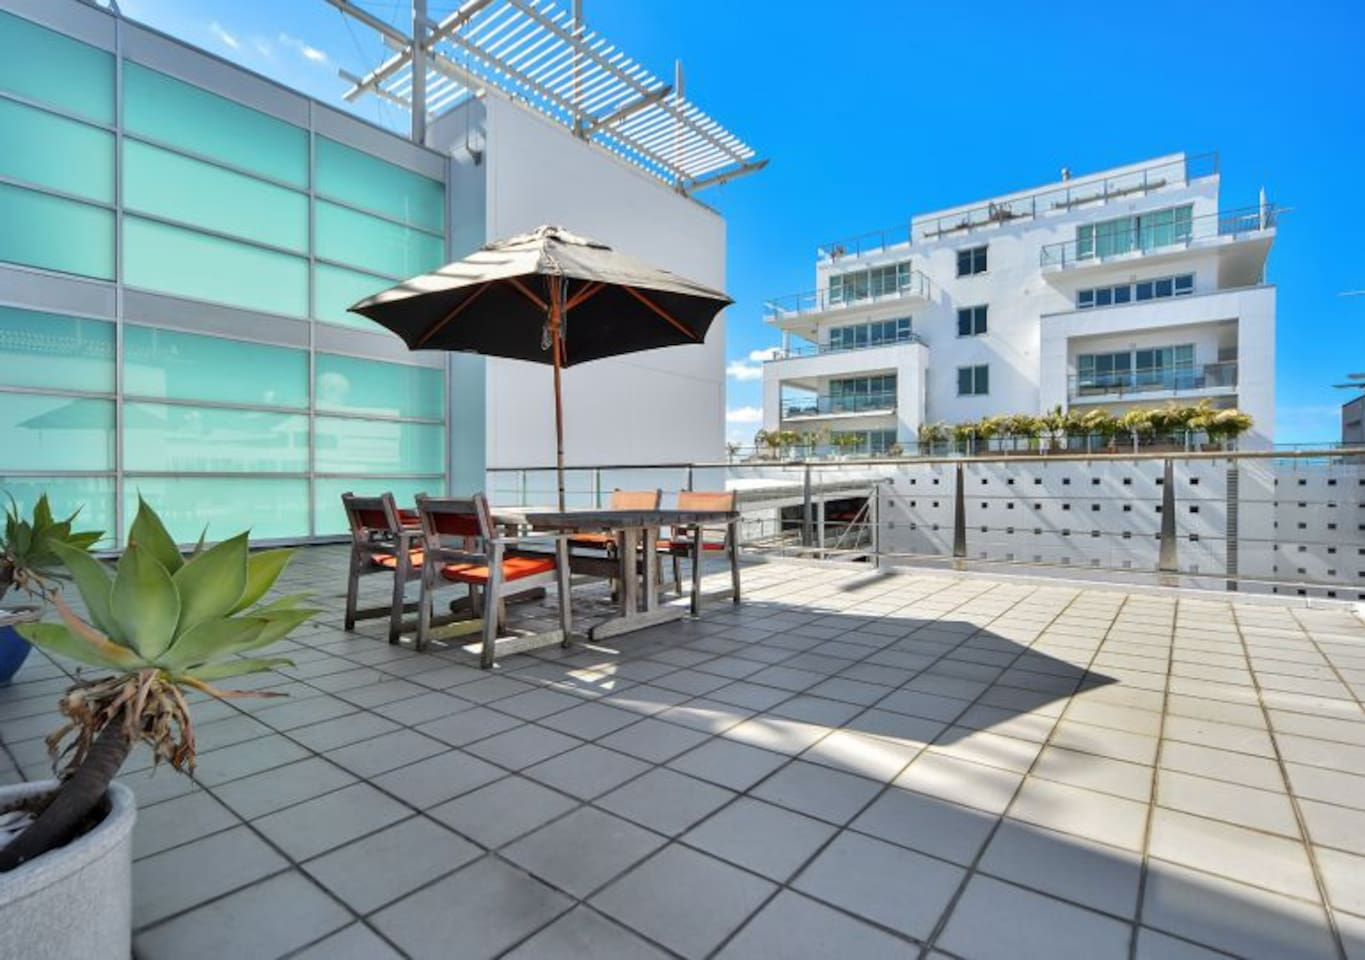 Apartment with large sunny balcony which doubles your living space.